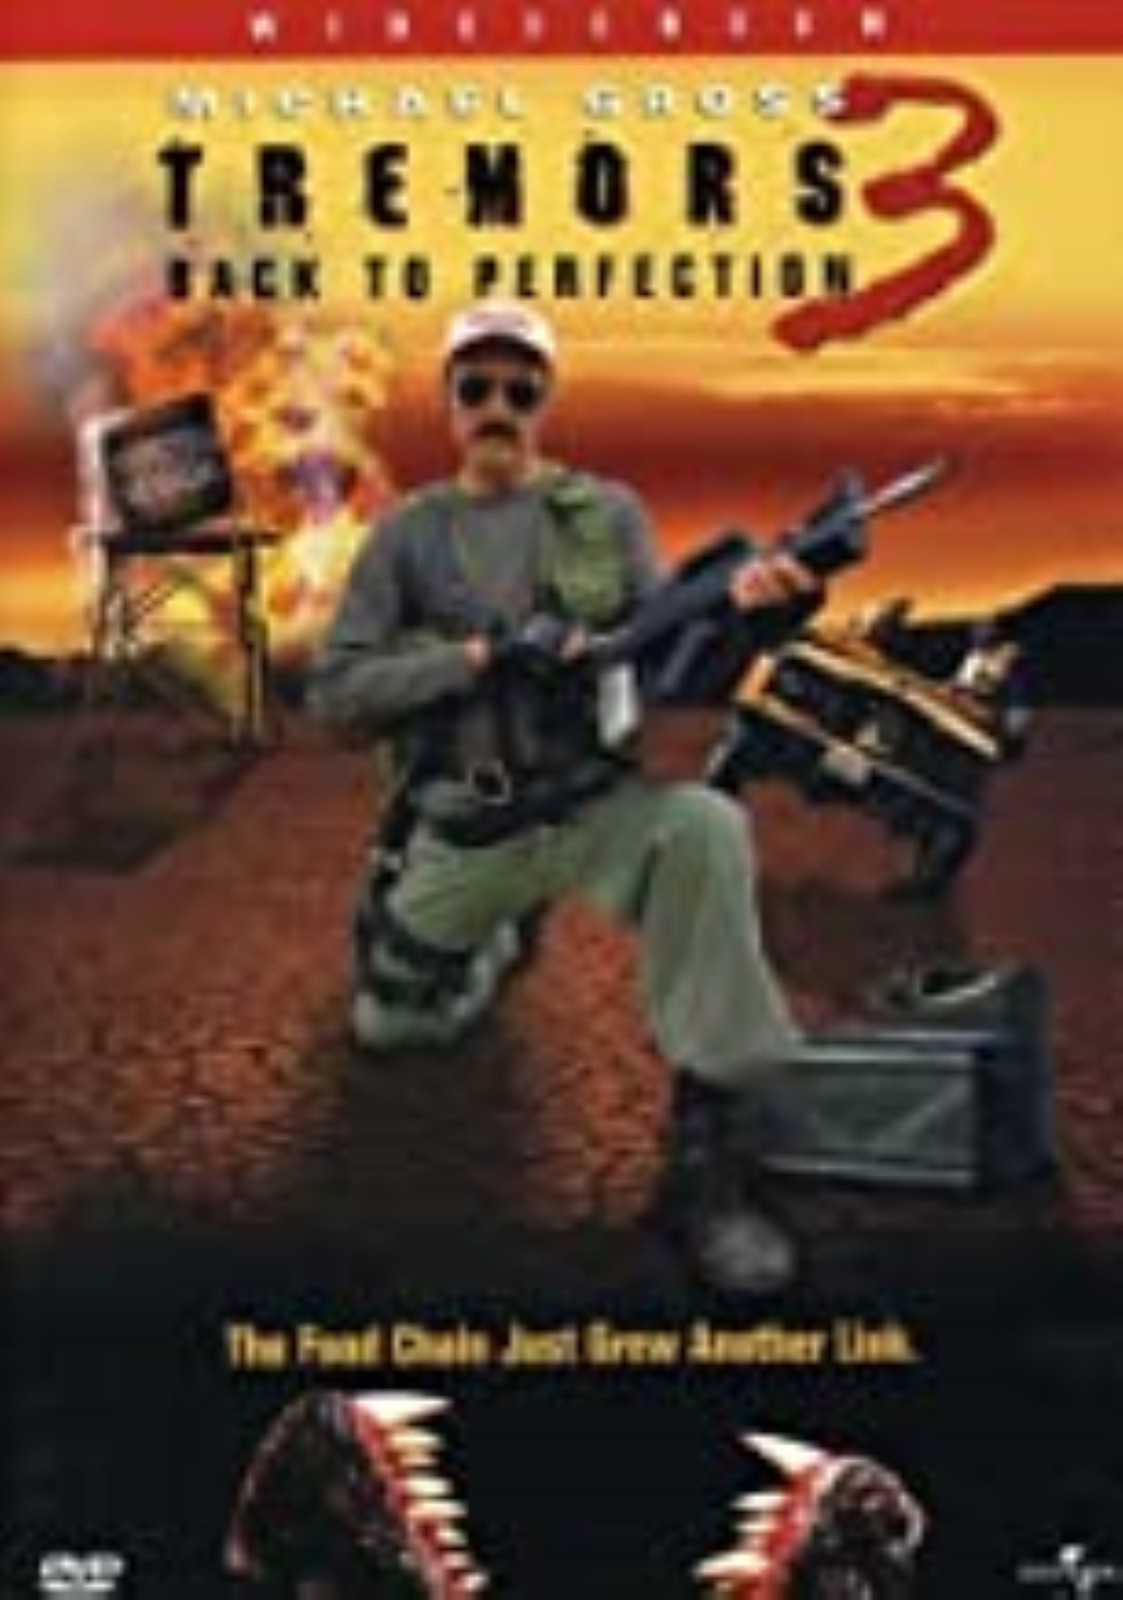 Tremors 3: Back to Perfection Dvd